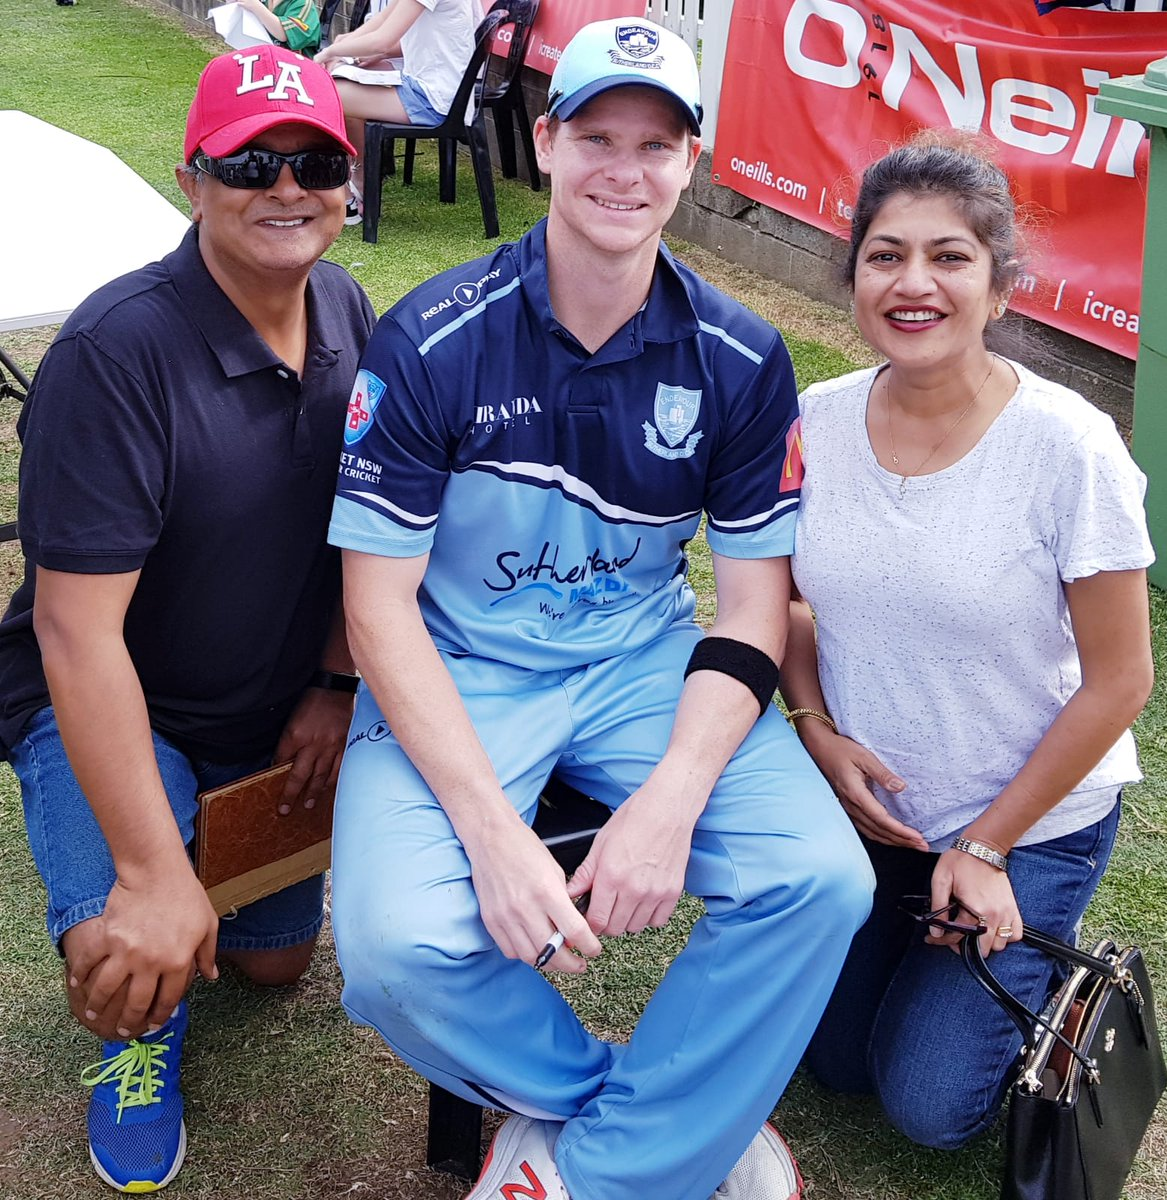 With Steve Smith #cricket #coogeeoval club cricket #stevesmith #randwickpetersham<br>http://pic.twitter.com/i3i4ZcPd8B